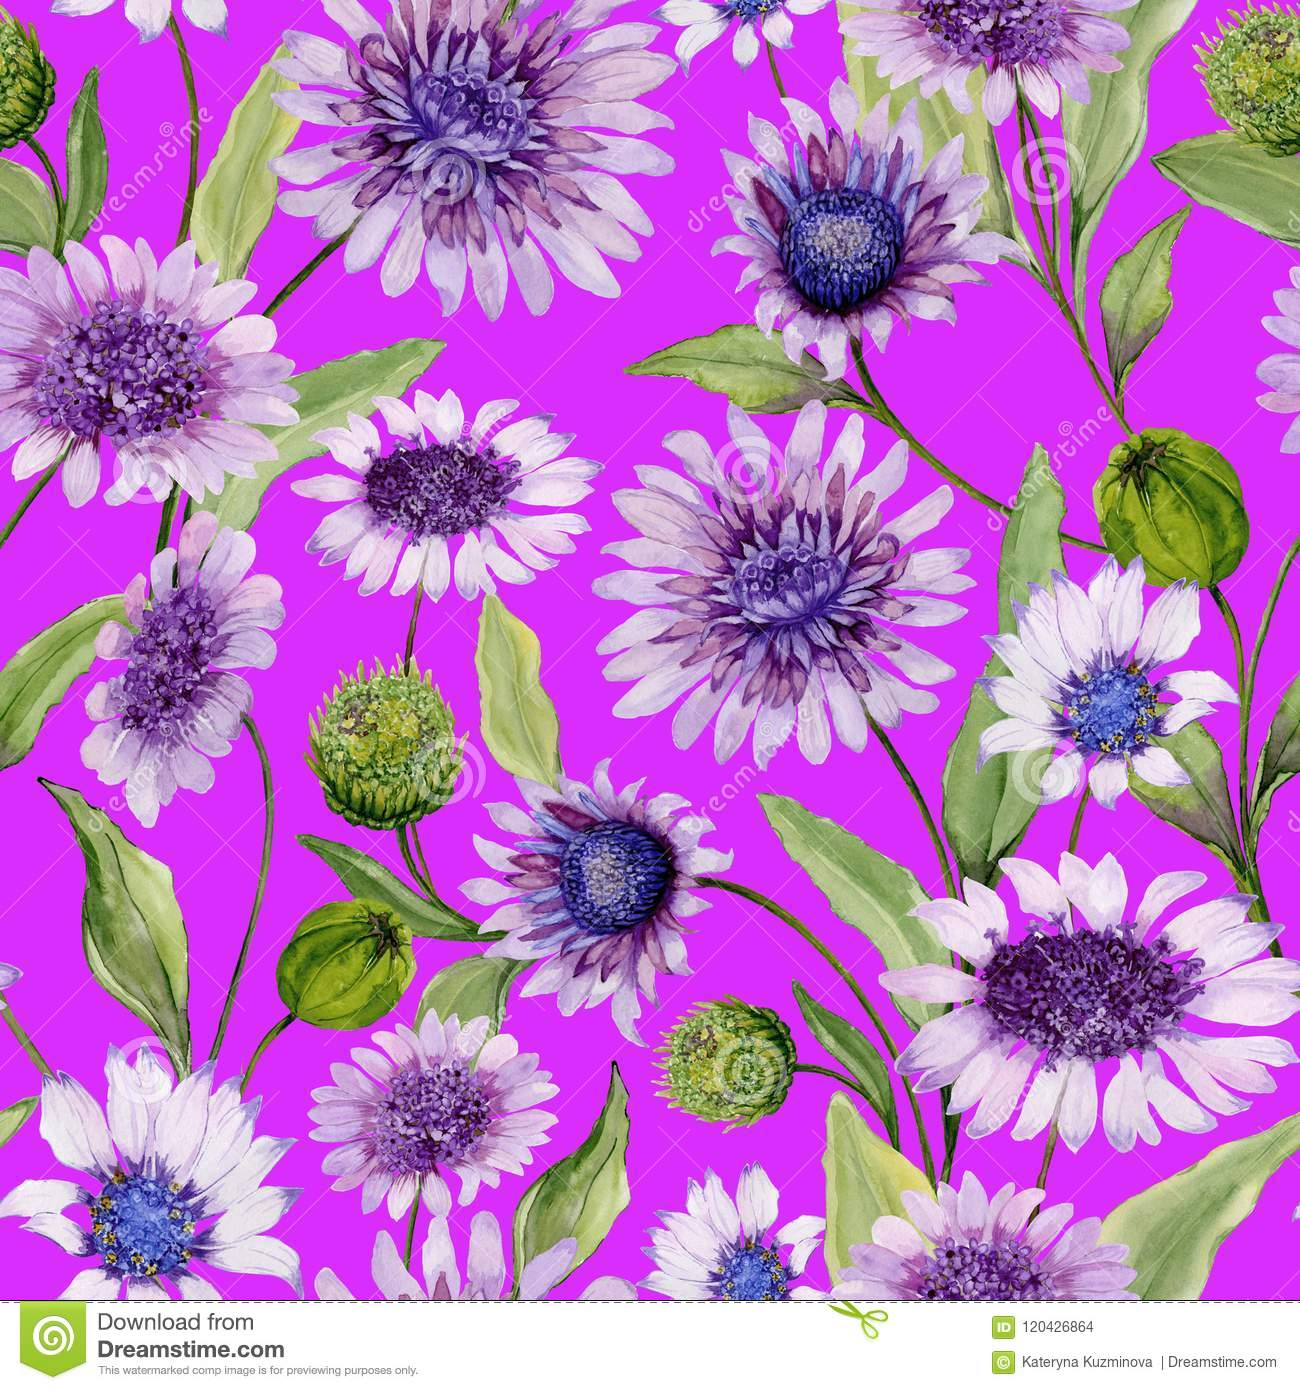 Beautiful blue and purple daisy flowers with green leaves on vivid beautiful blue and purple daisy flowers with green leaves on vivid pink background seamless spring izmirmasajfo